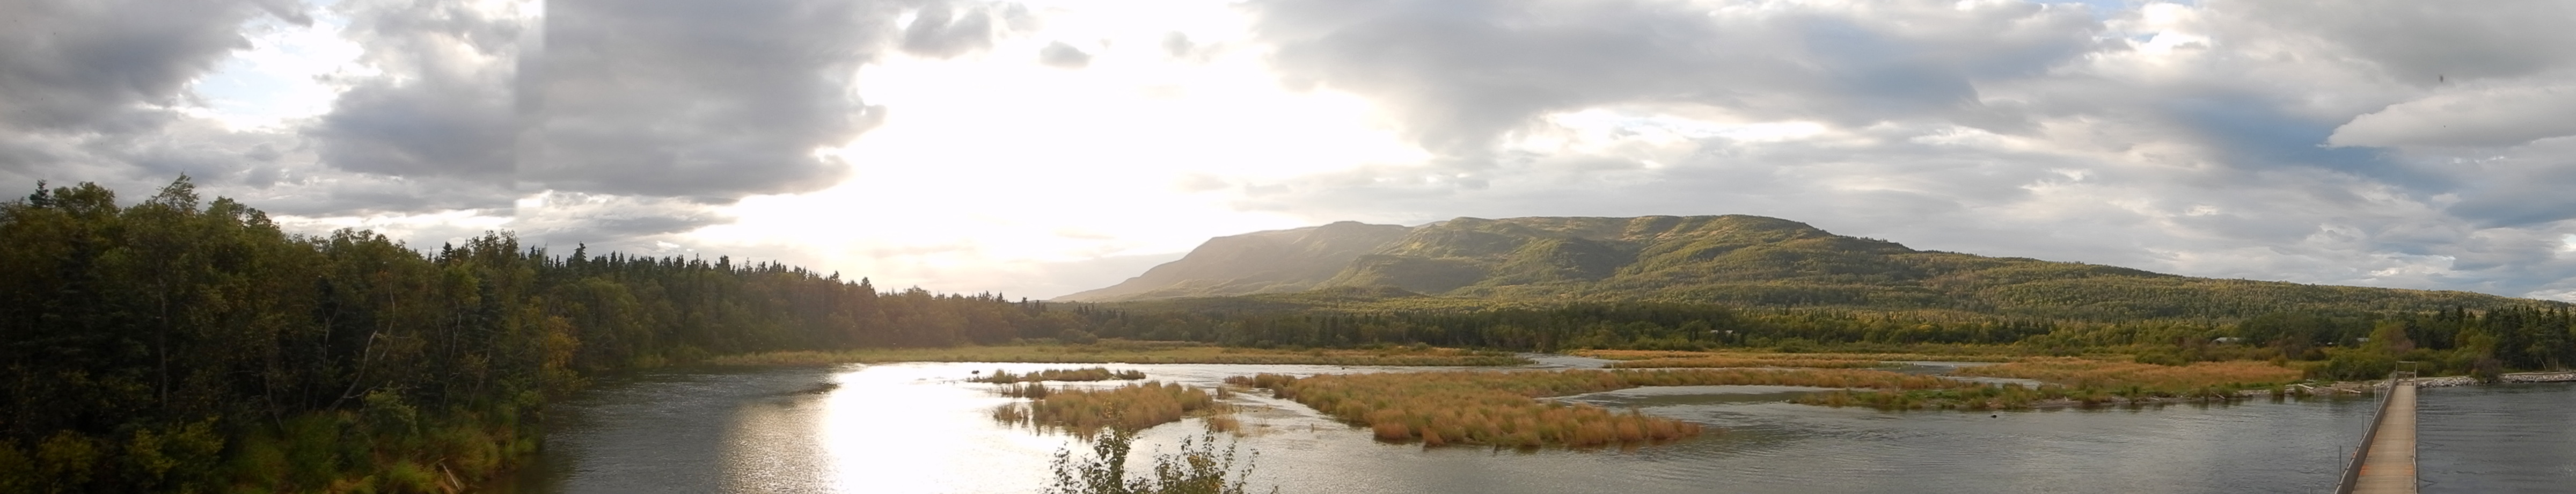 panorama of river and mountain near sunset